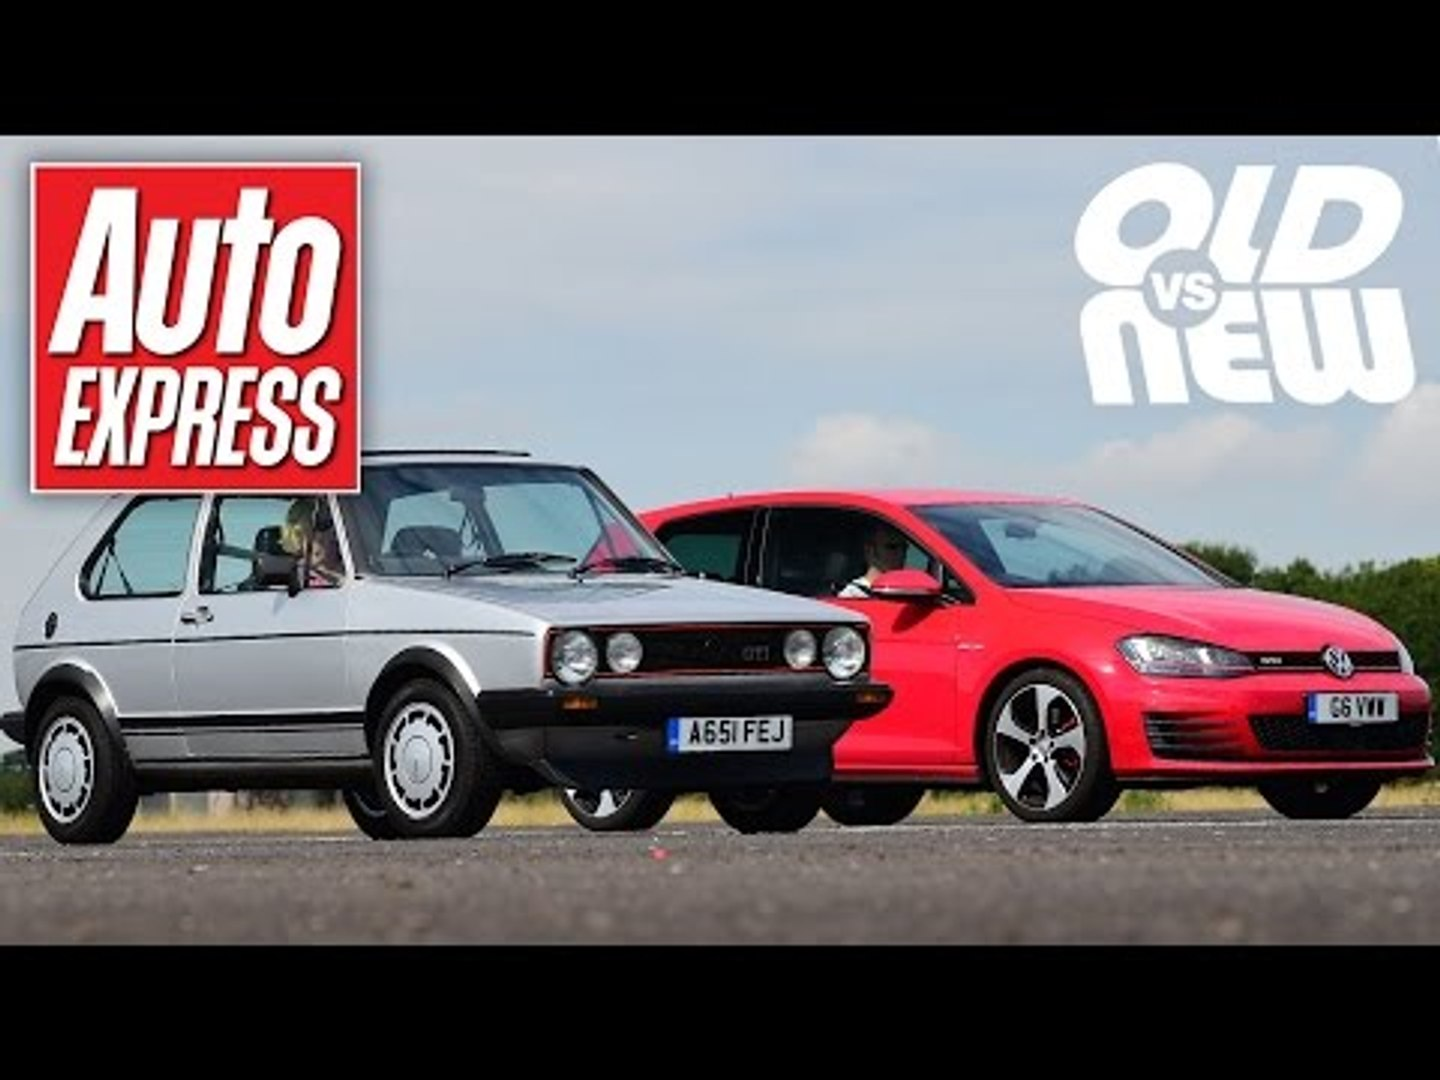 VW Golf GTI Mk1 vs Golf GTI Mk7 - Old vs new drag race challenge